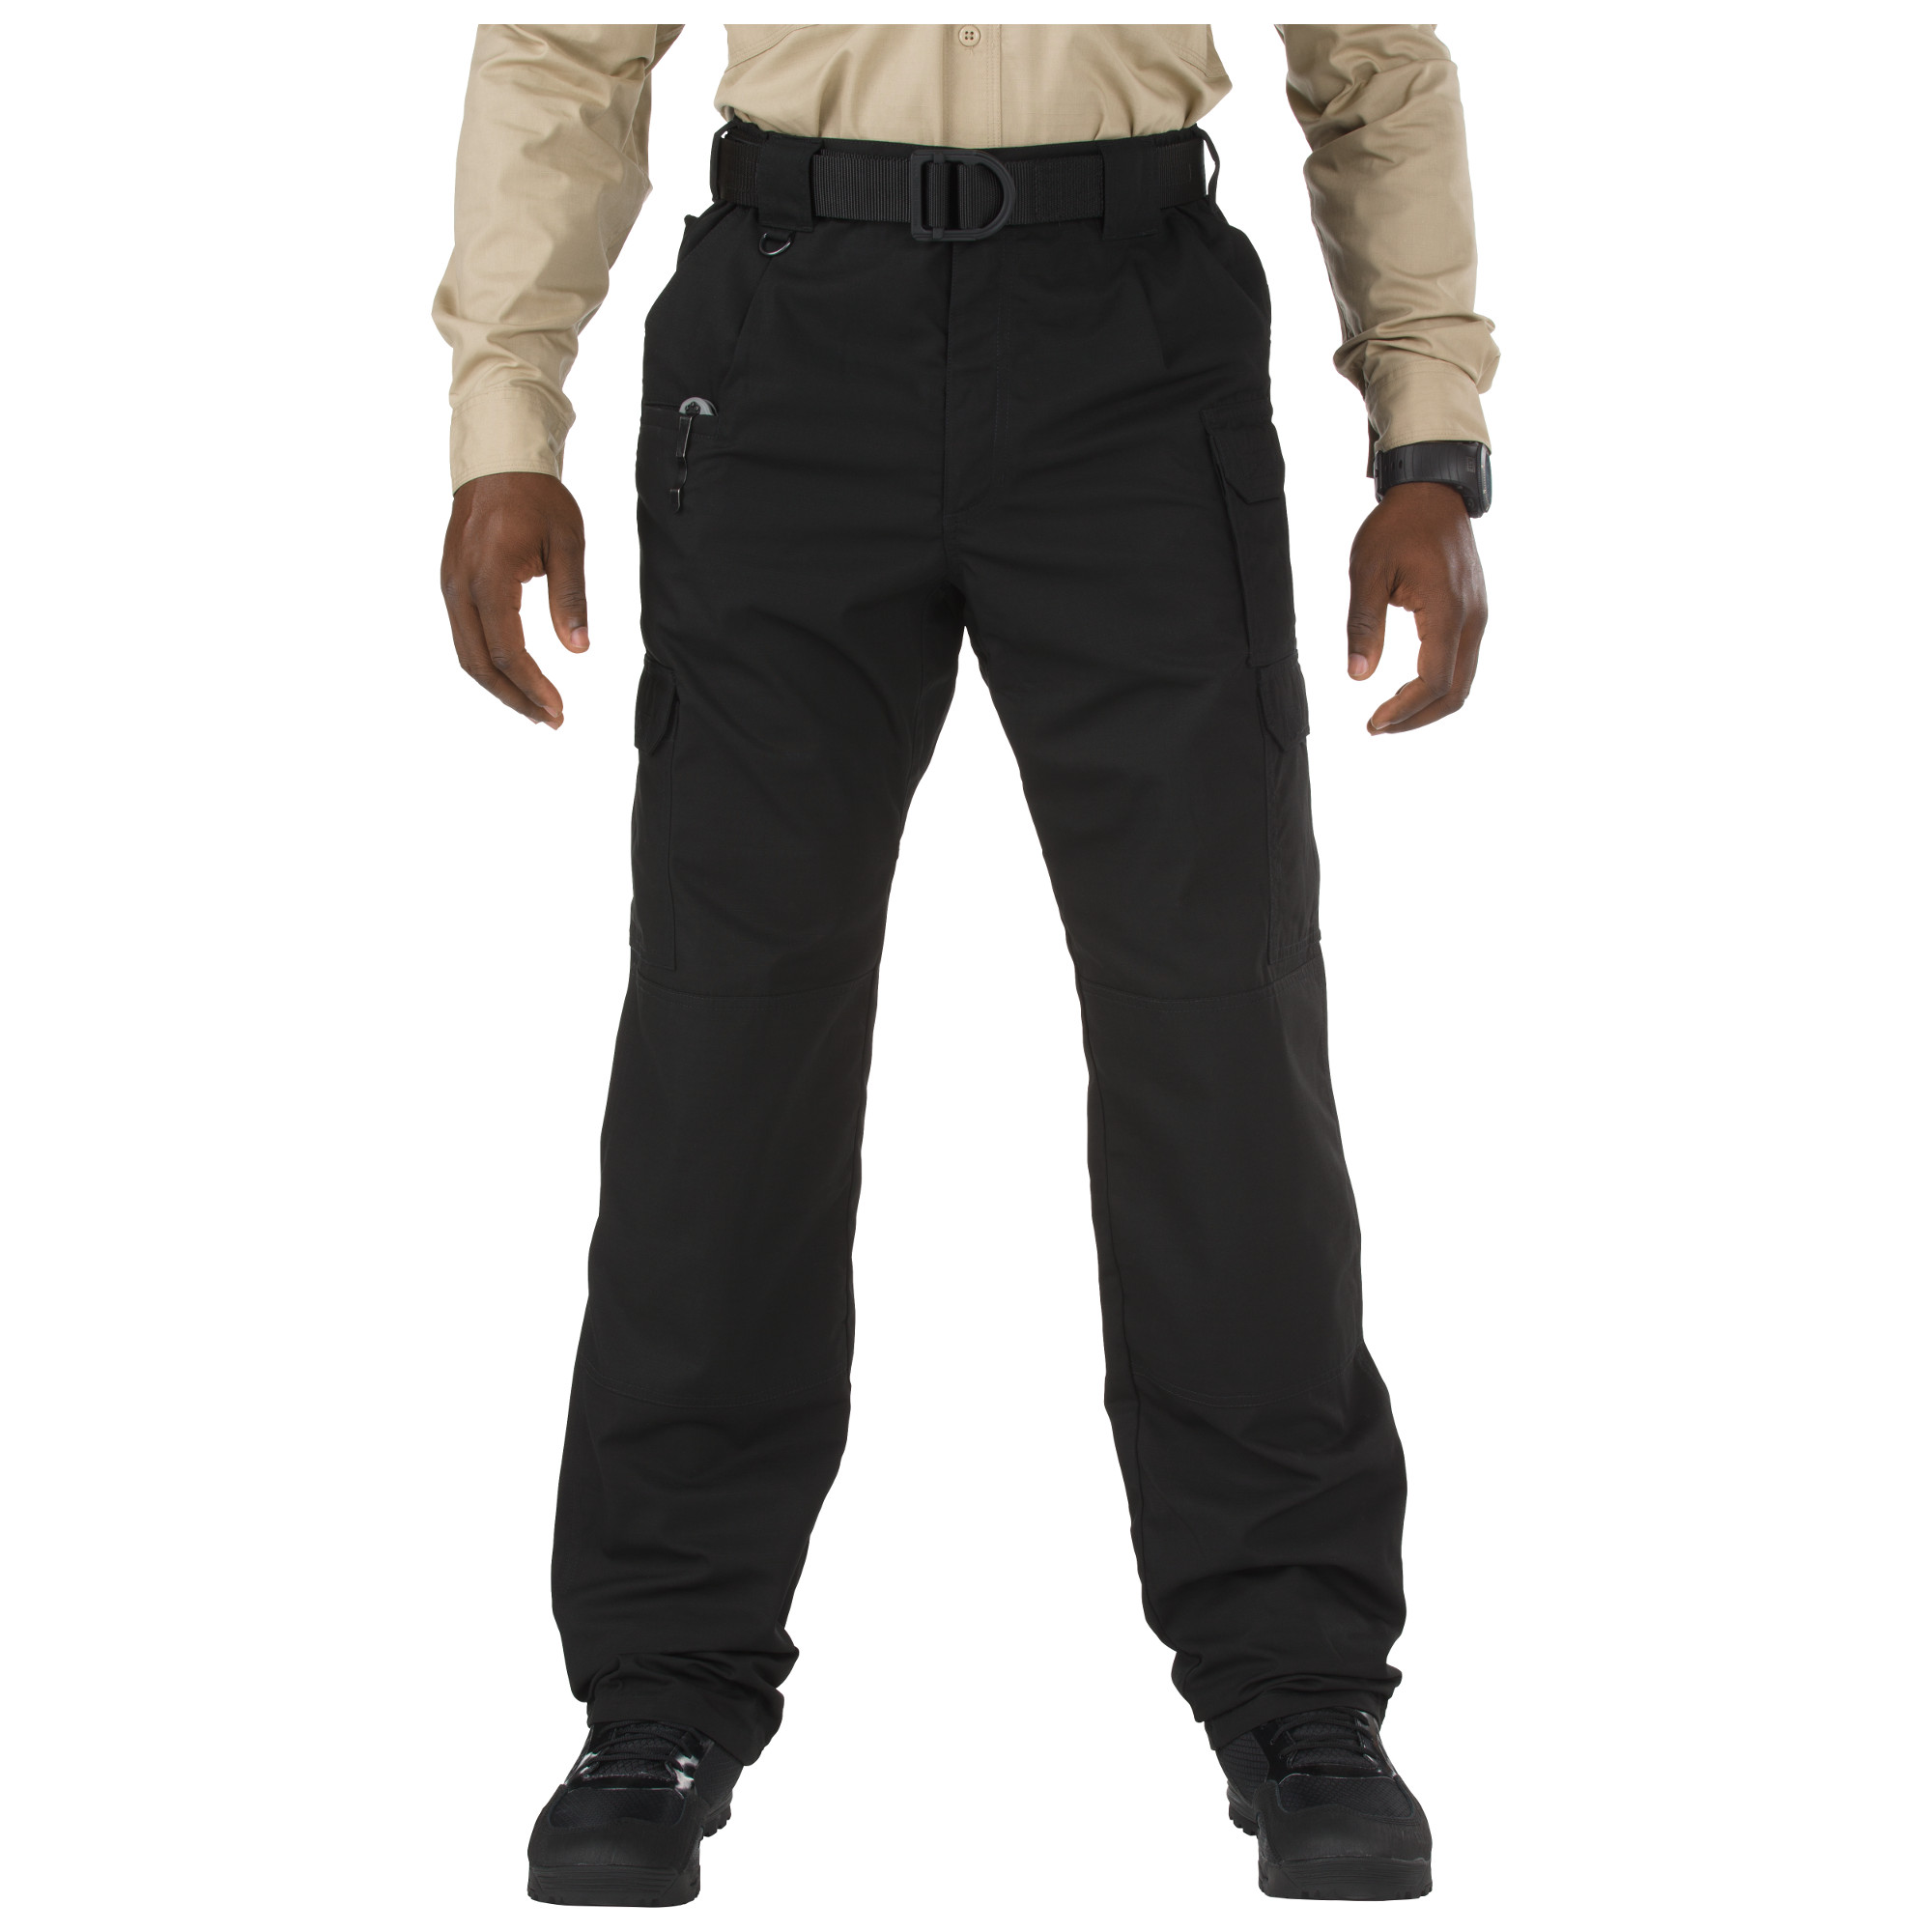 5.11 Mens GSA Approved Taclite Pants Style 74252